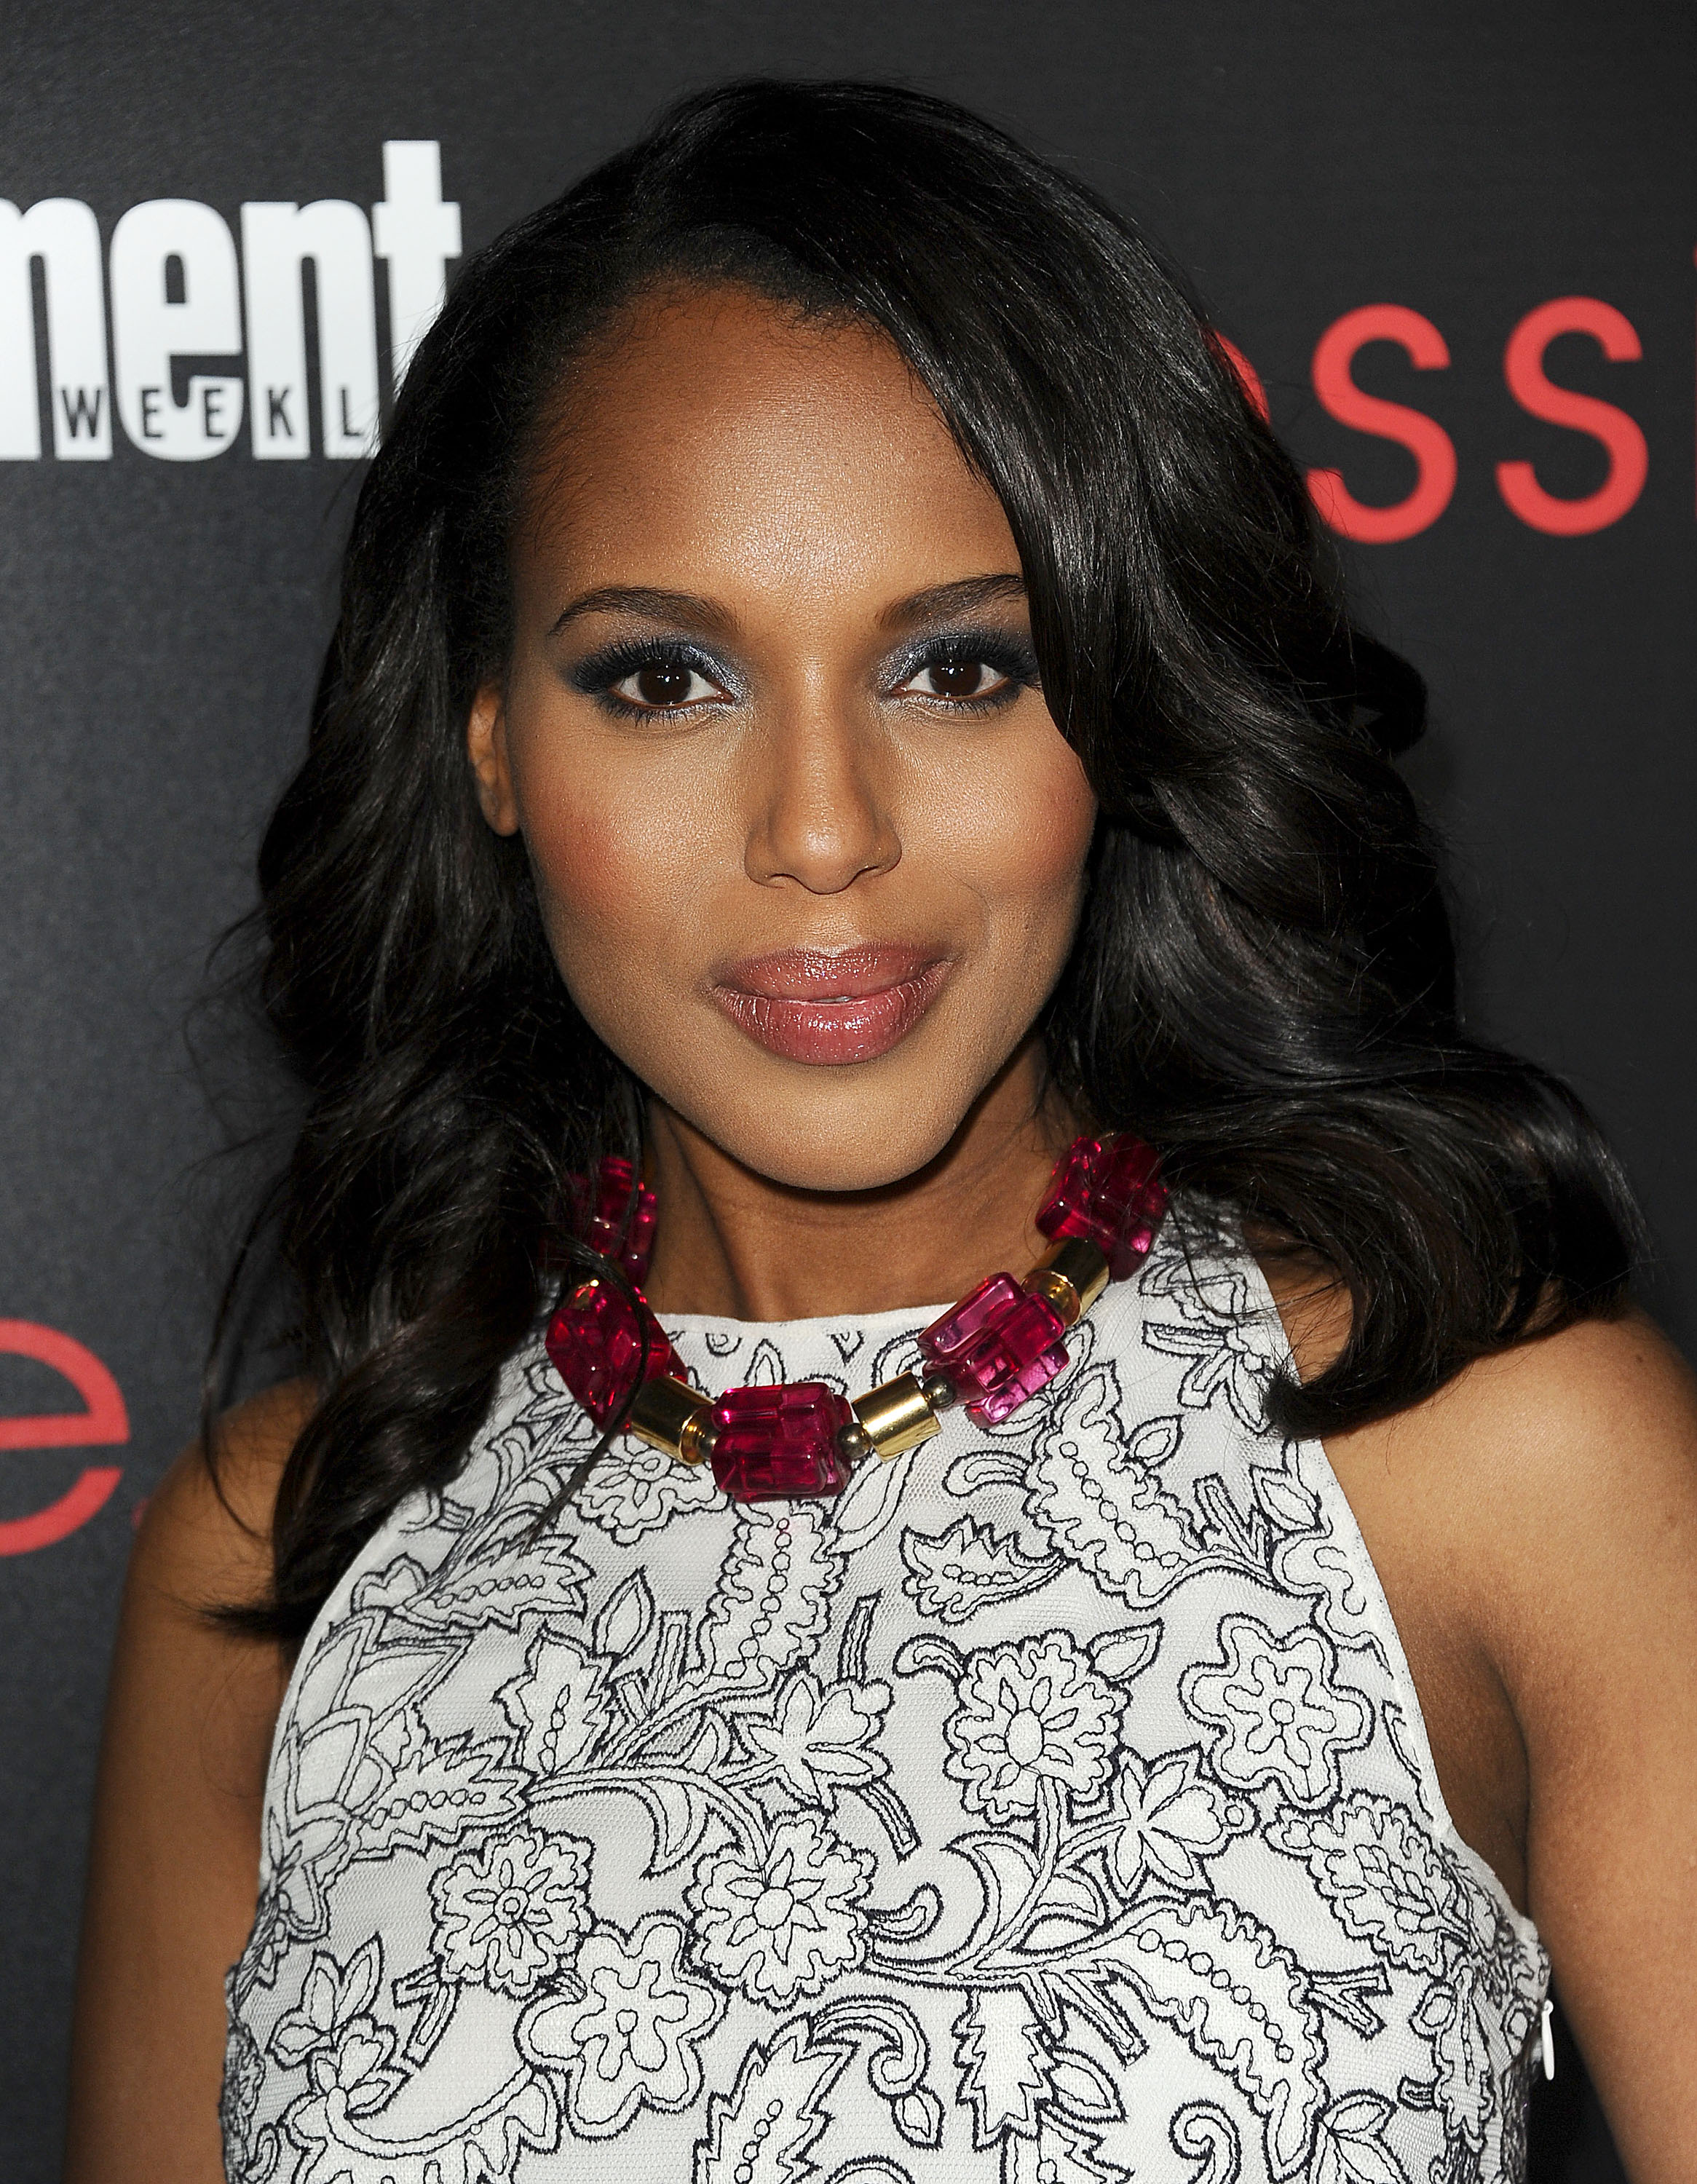 300x300px Kerry Washington 50.14 KB